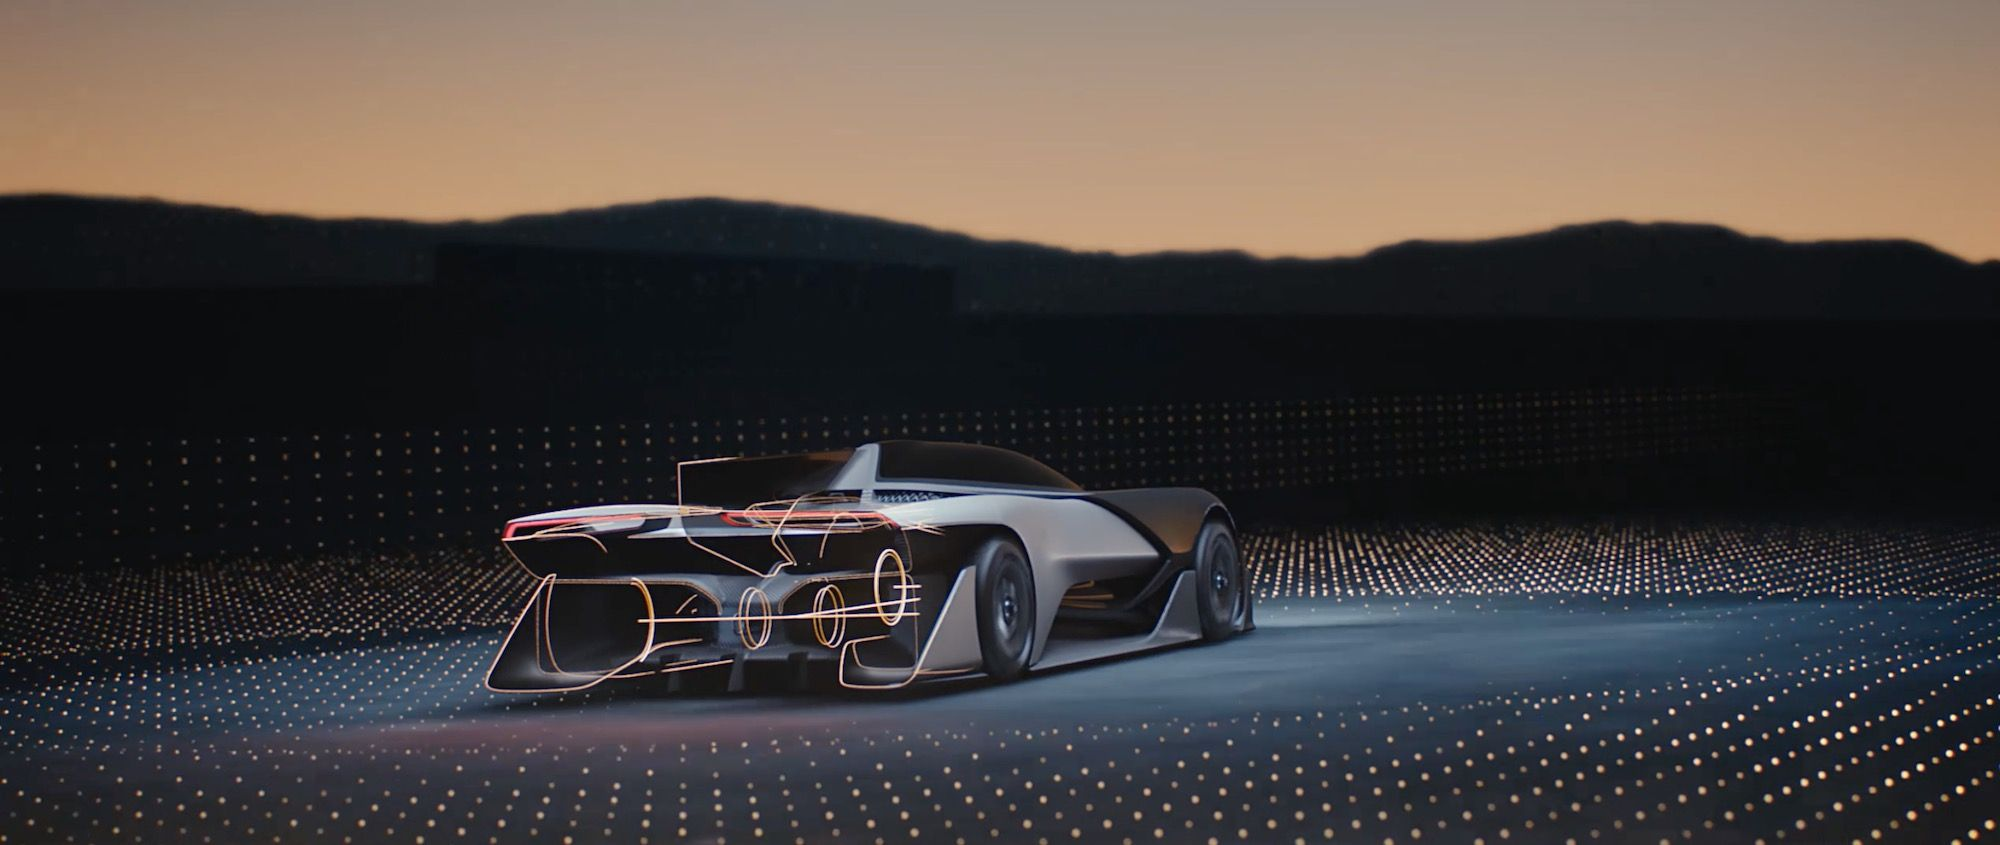 Faraday Future Plans Formula E Autonomous Driving Faraday